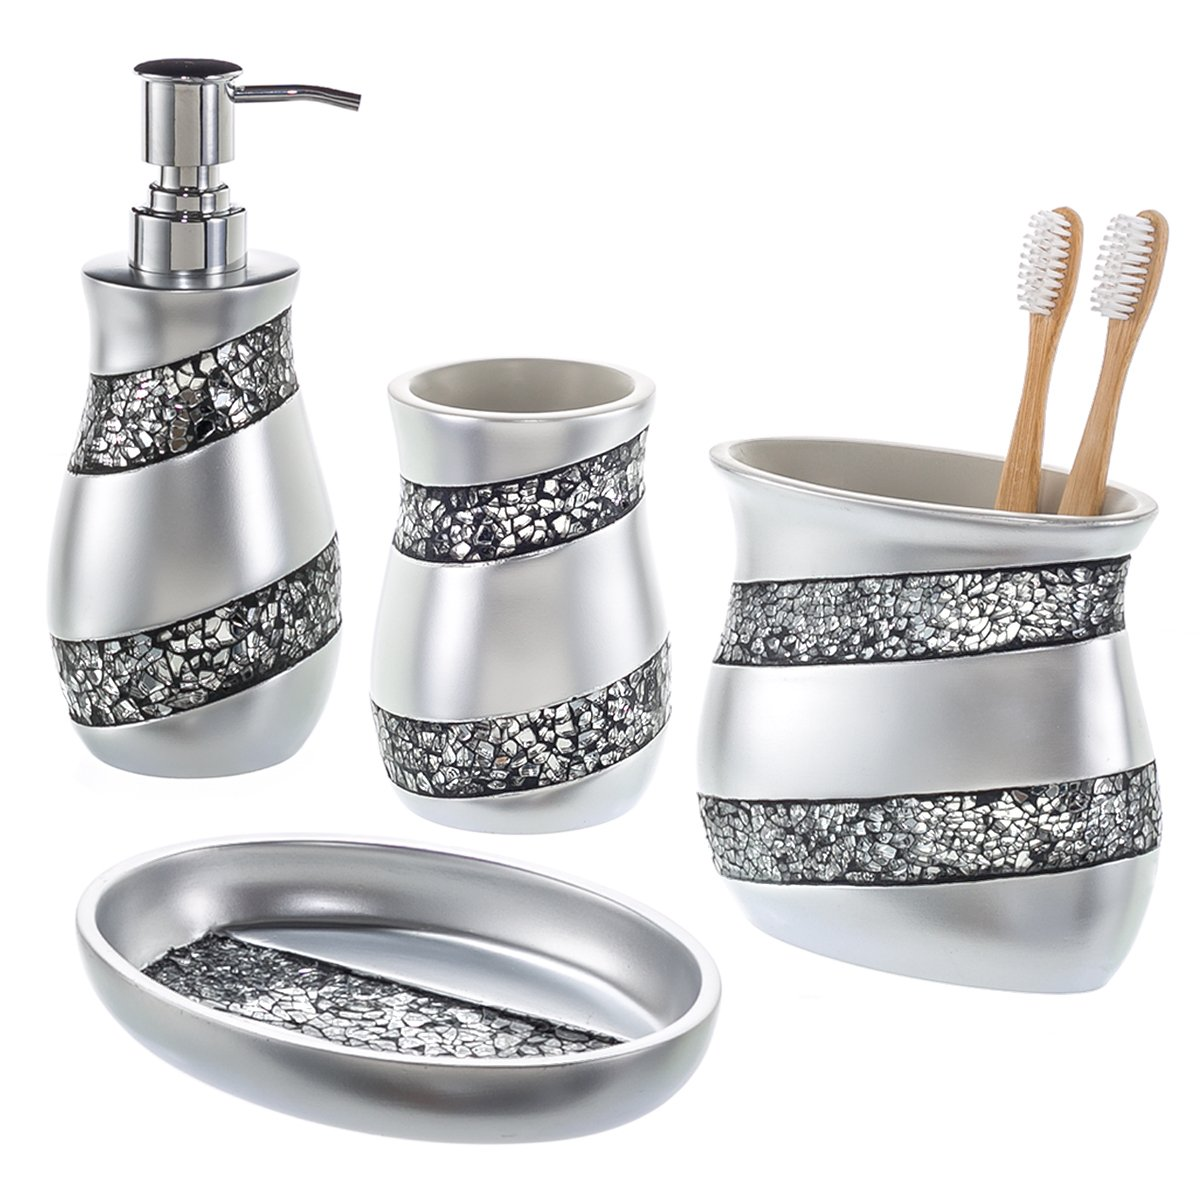 Amazon.com: Creative Scents Bathroom Accessories Set, 4-Piece Silver ...